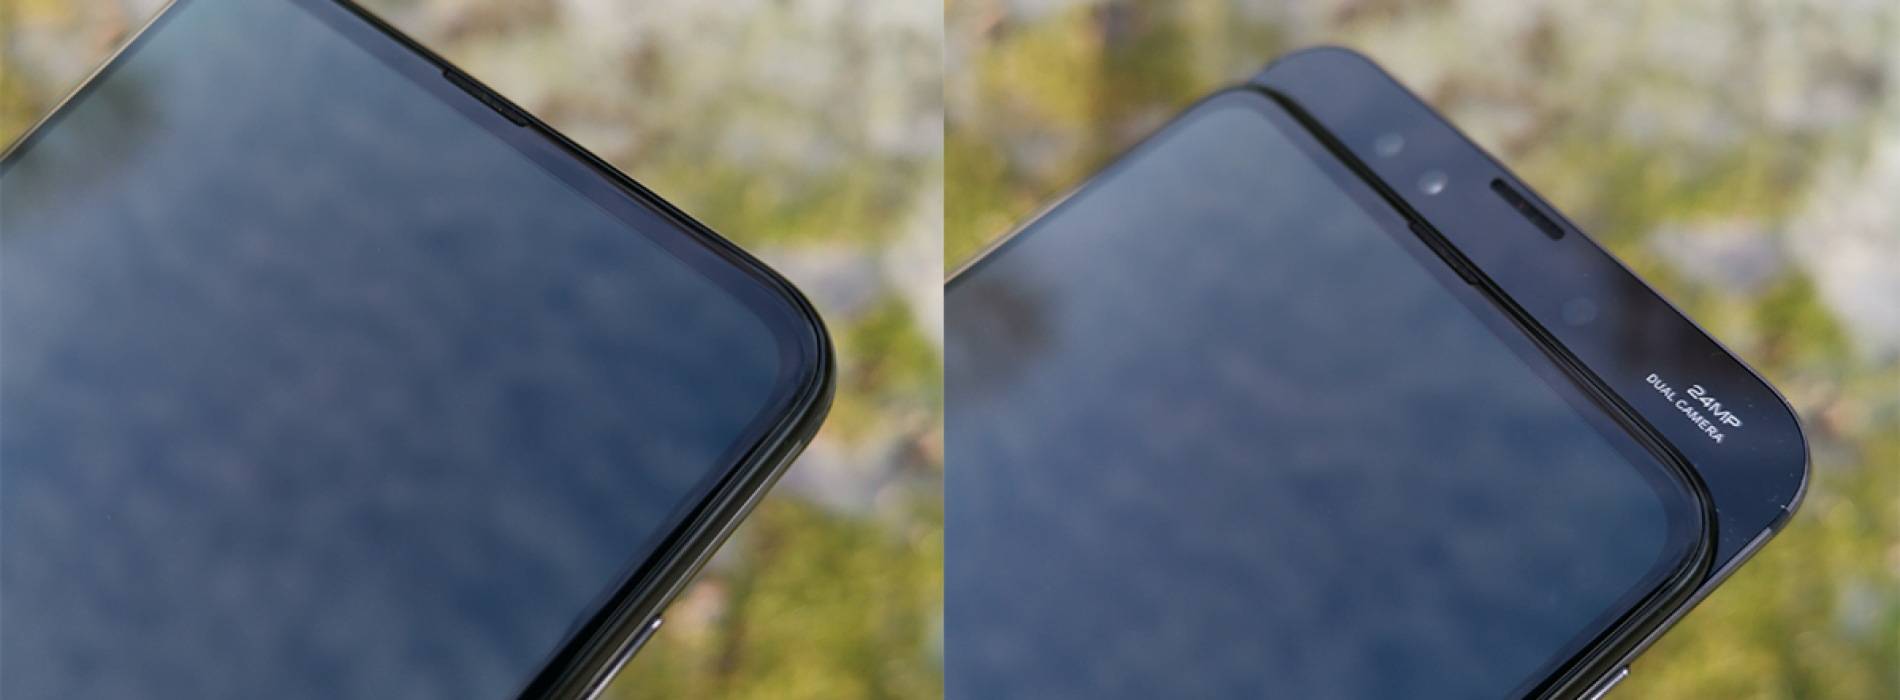 Apple prepares an iPhone with double notch for 2019